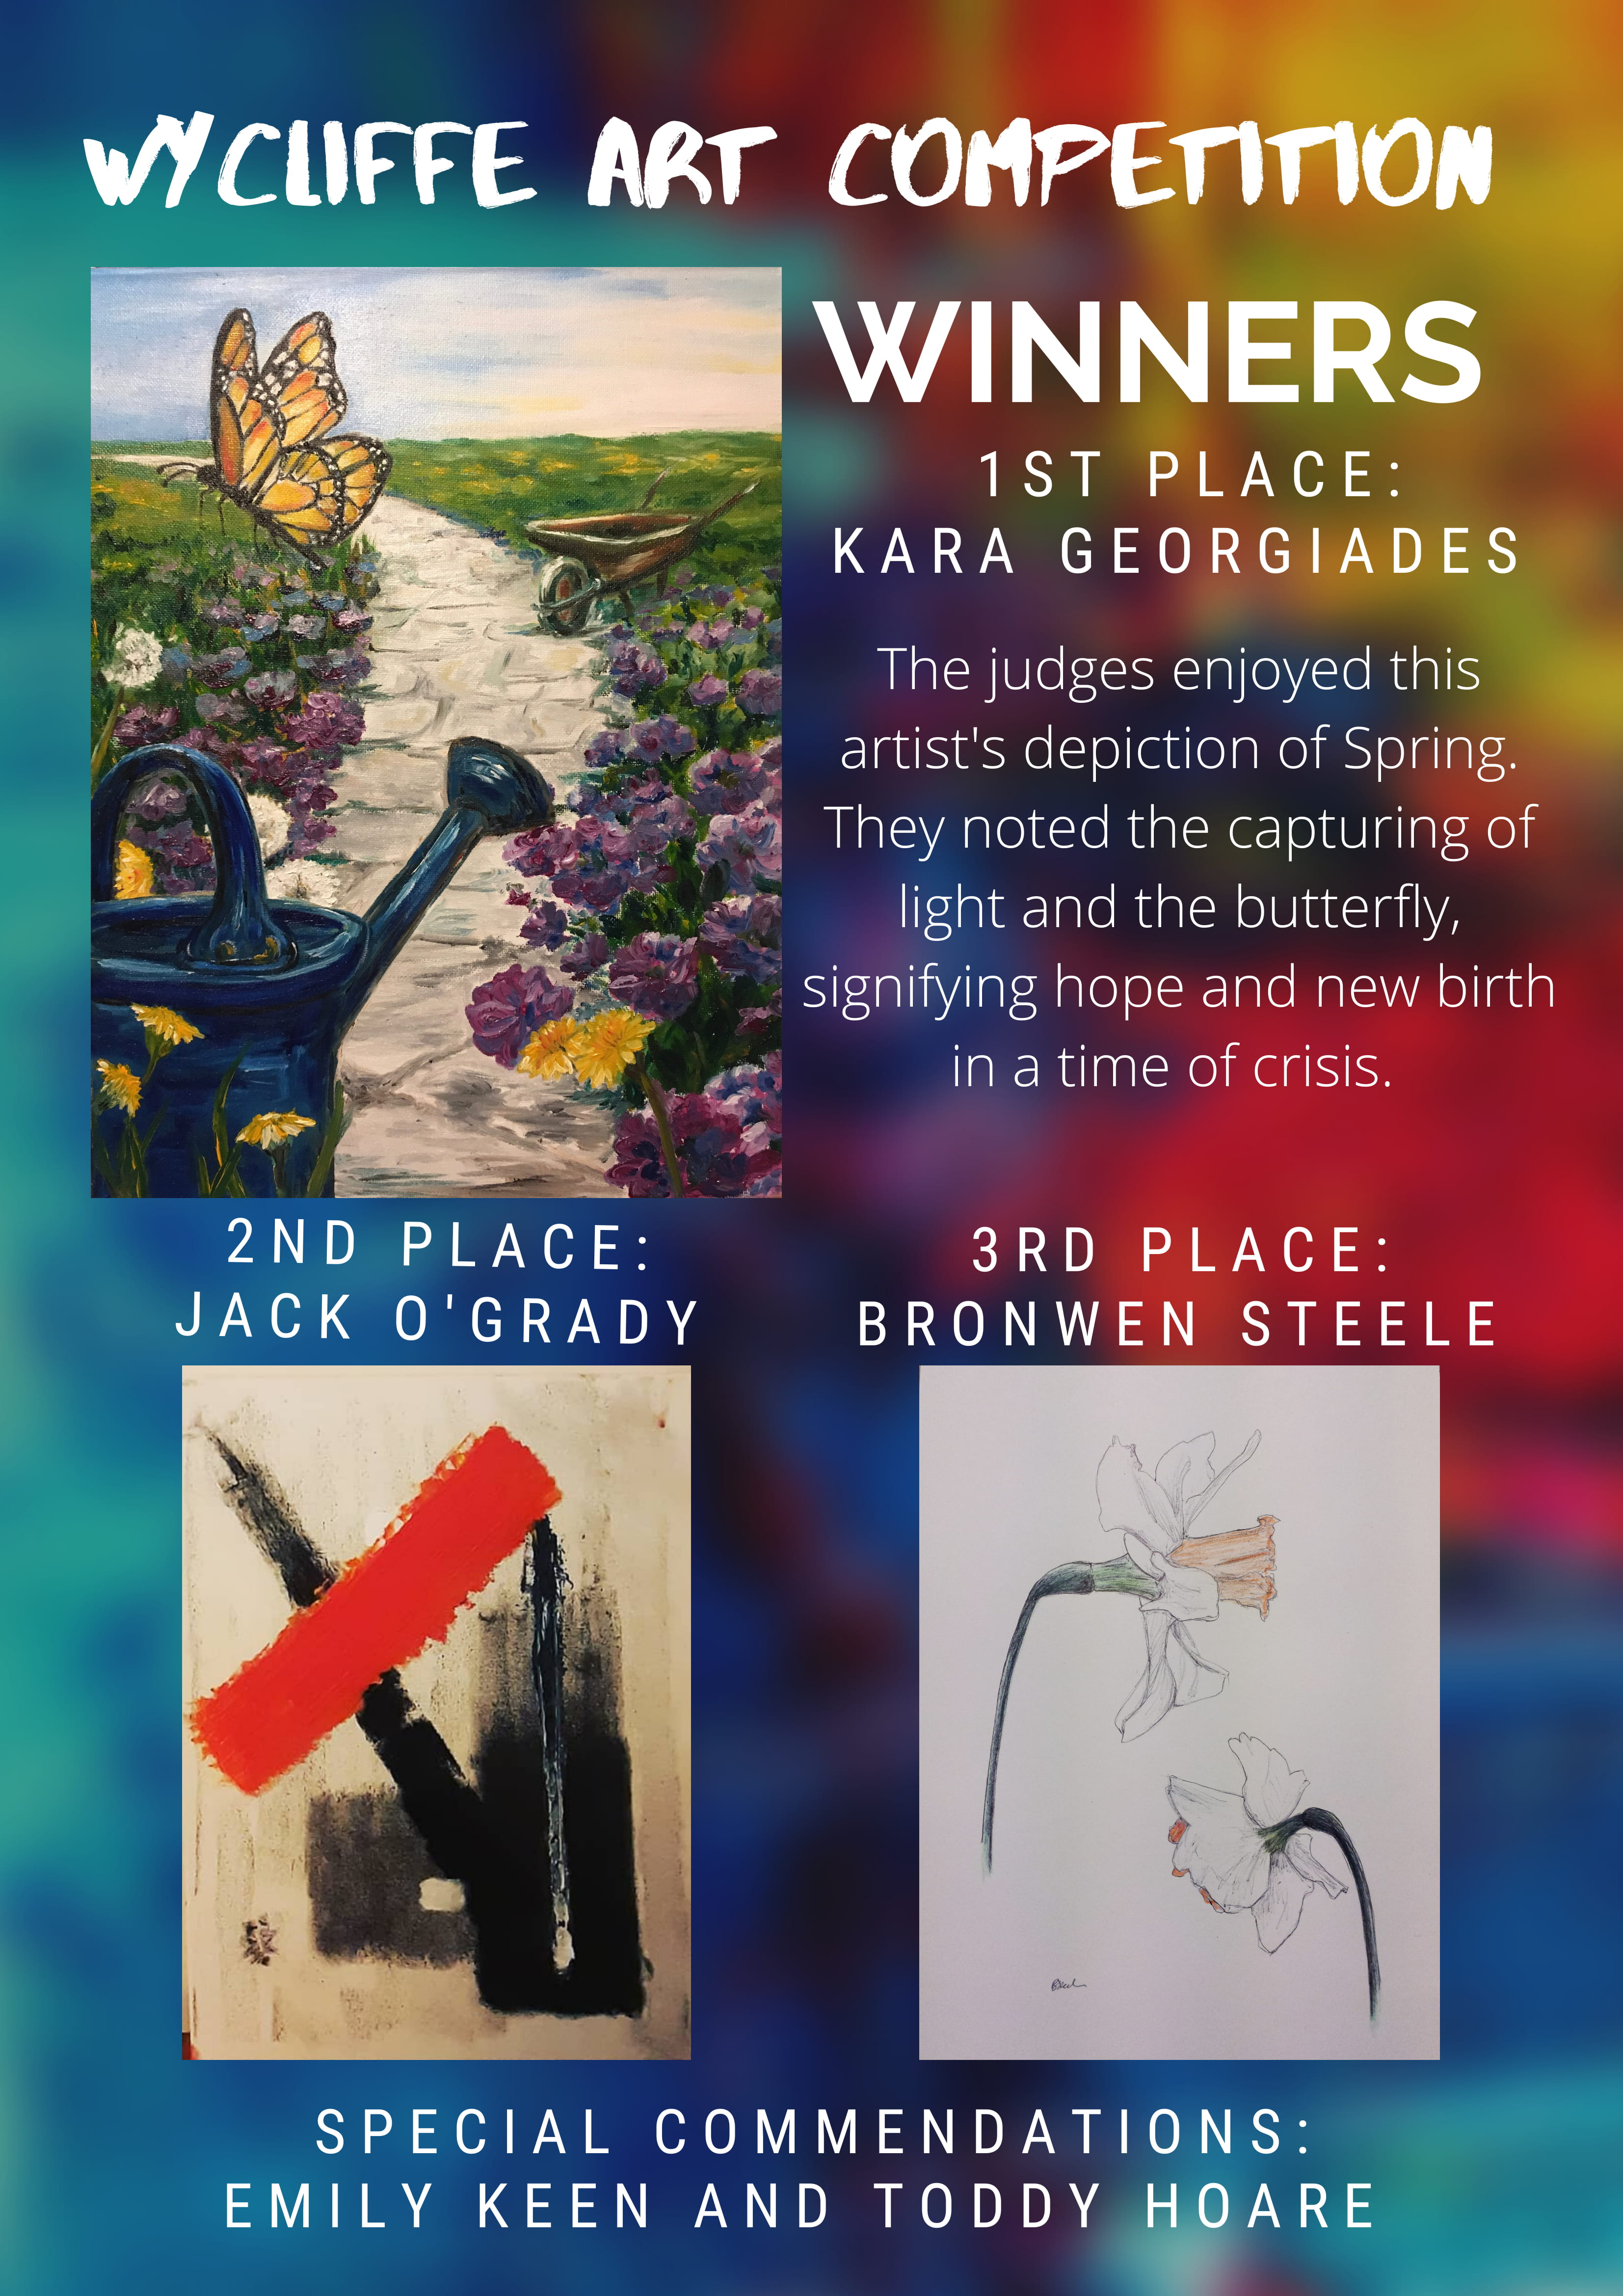 wycliffe art competition march 2020 winners poster